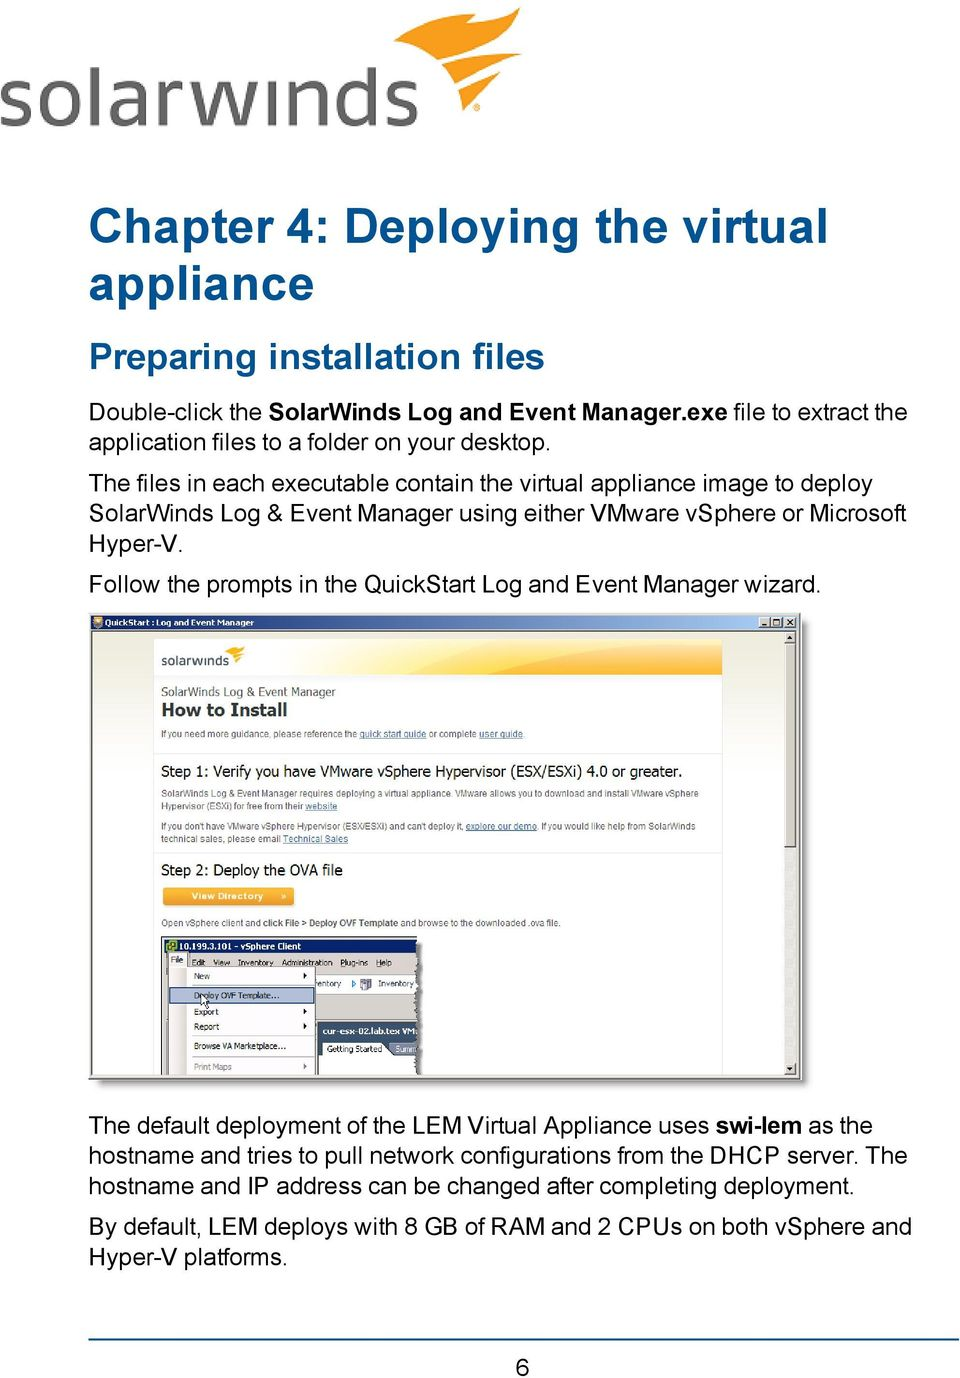 The files in each executable contain the virtual appliance image to deploy SolarWinds Log & Event Manager using either VMware vsphere or Microsoft Hyper-V.